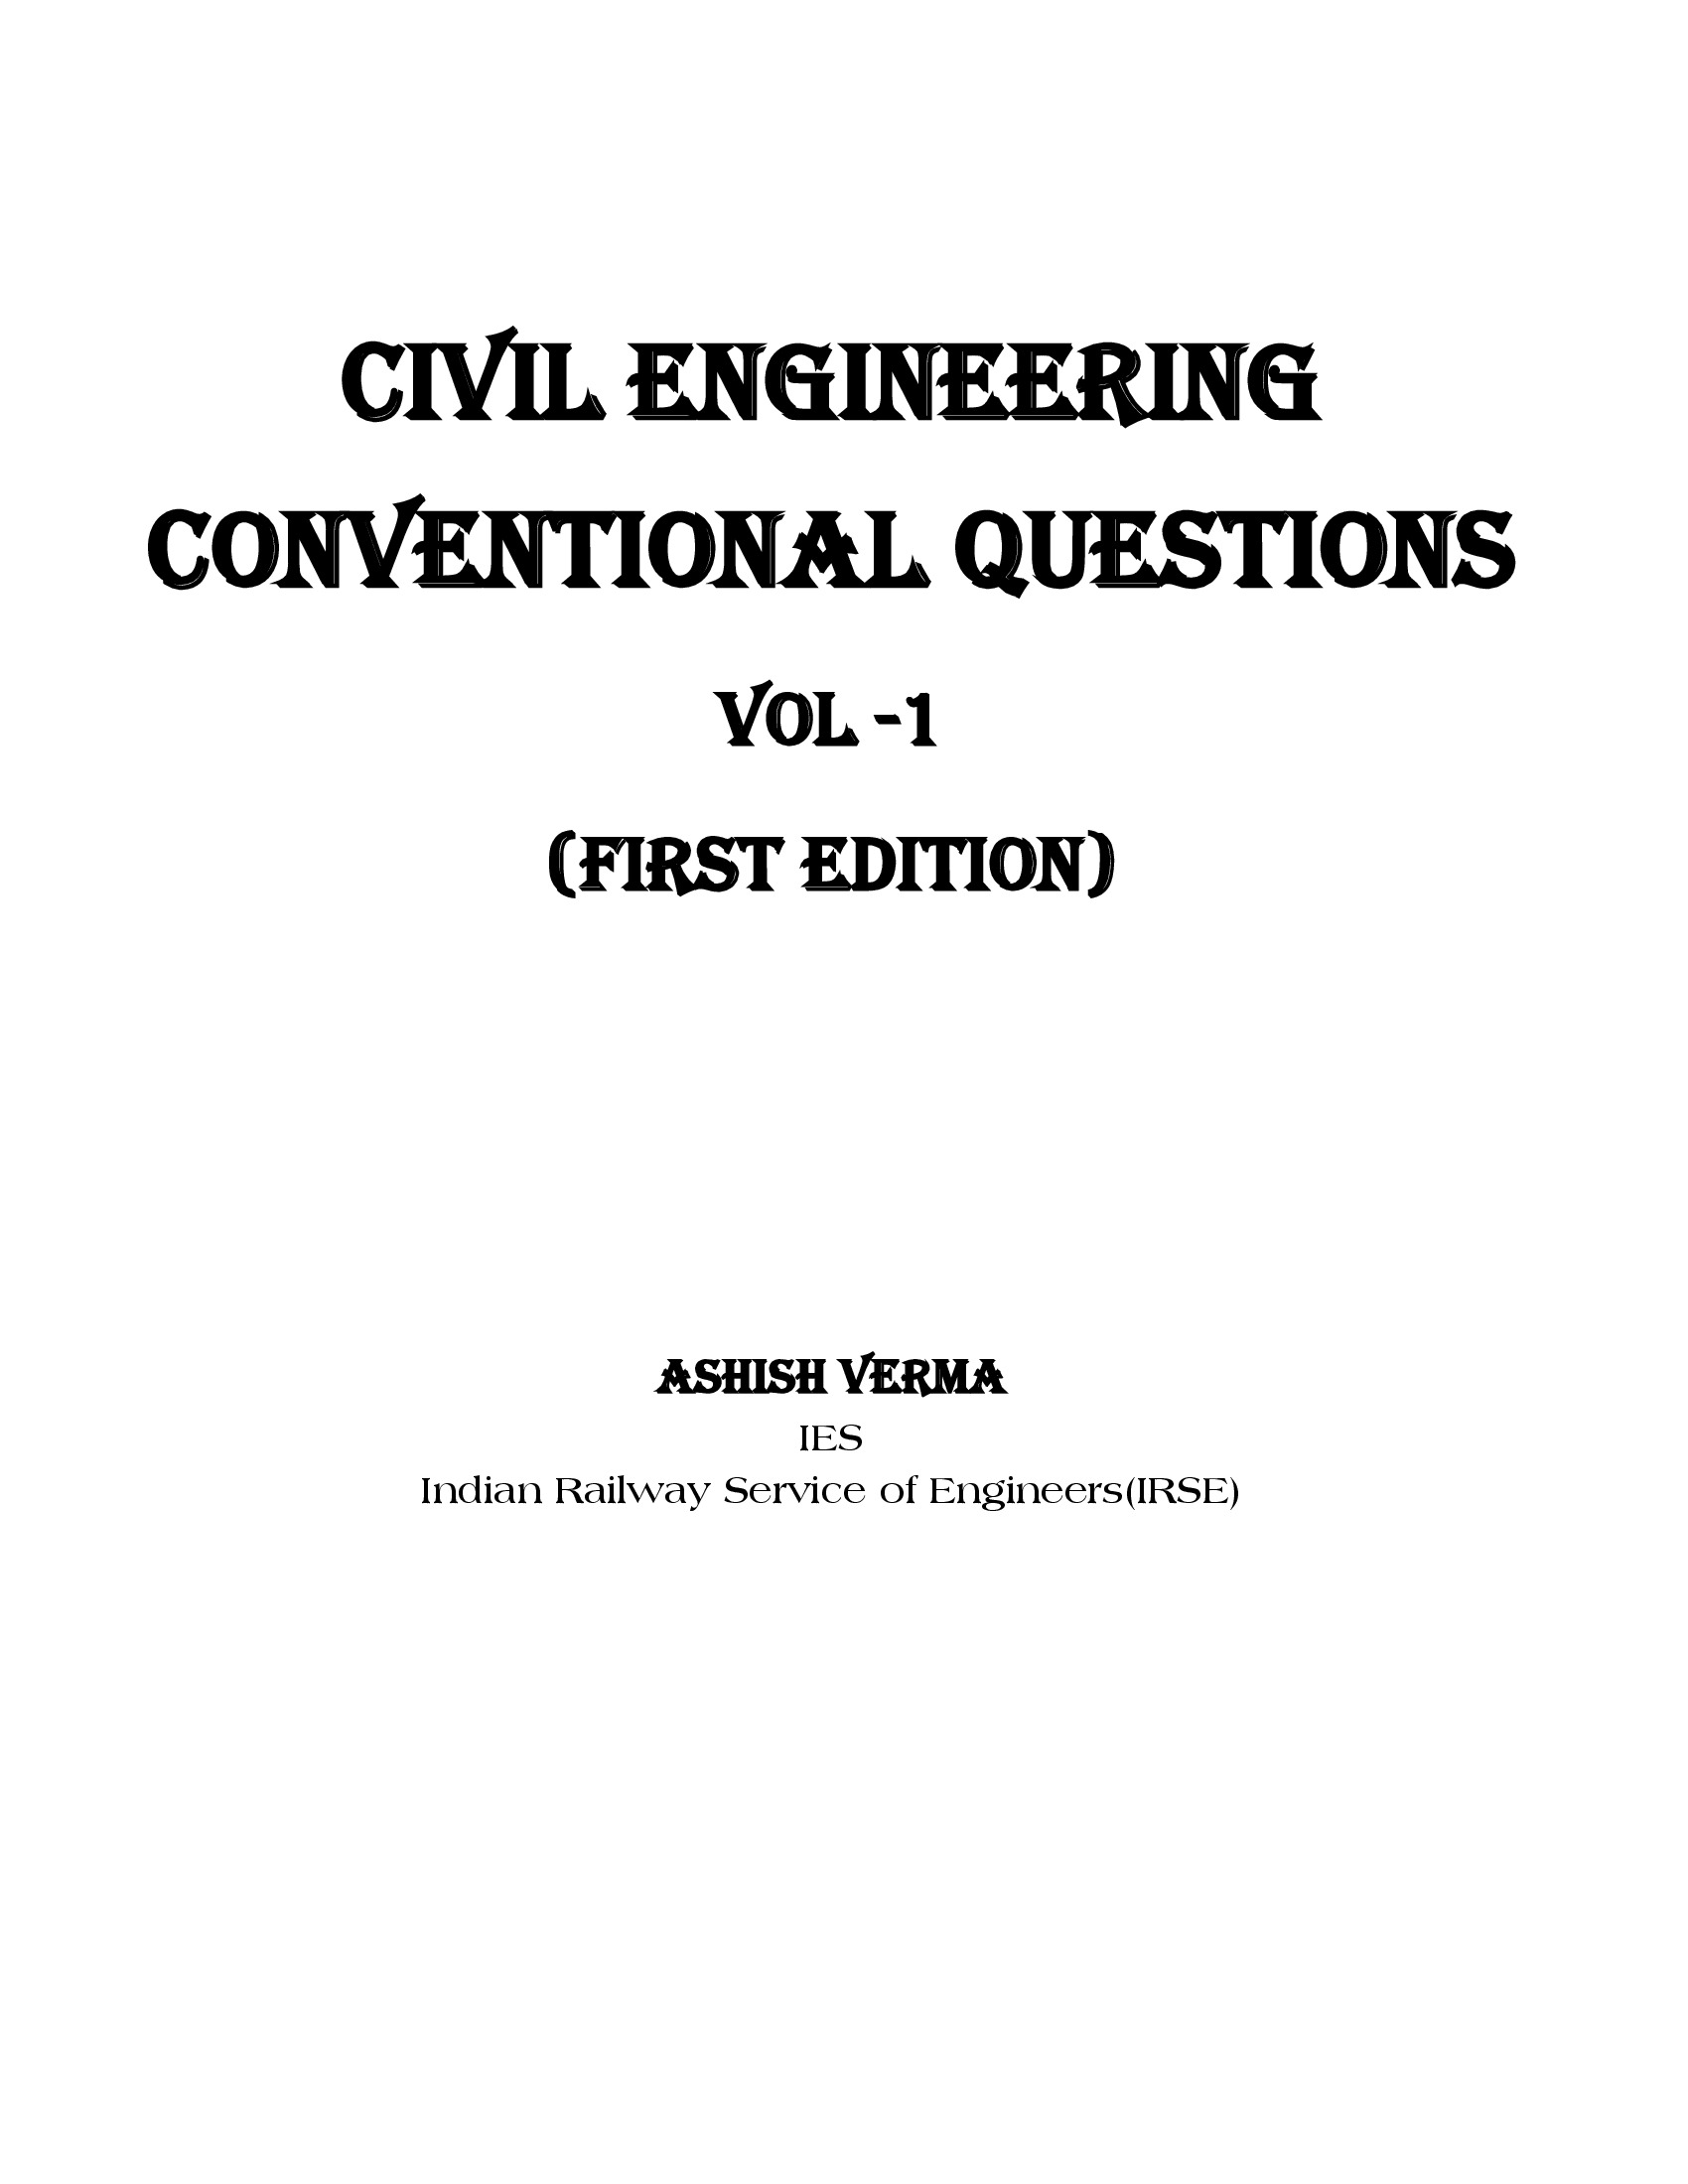 HANDBOOK OF CIVIL ENGINEERING QUESTIONS WITH SOLUTIONS BY